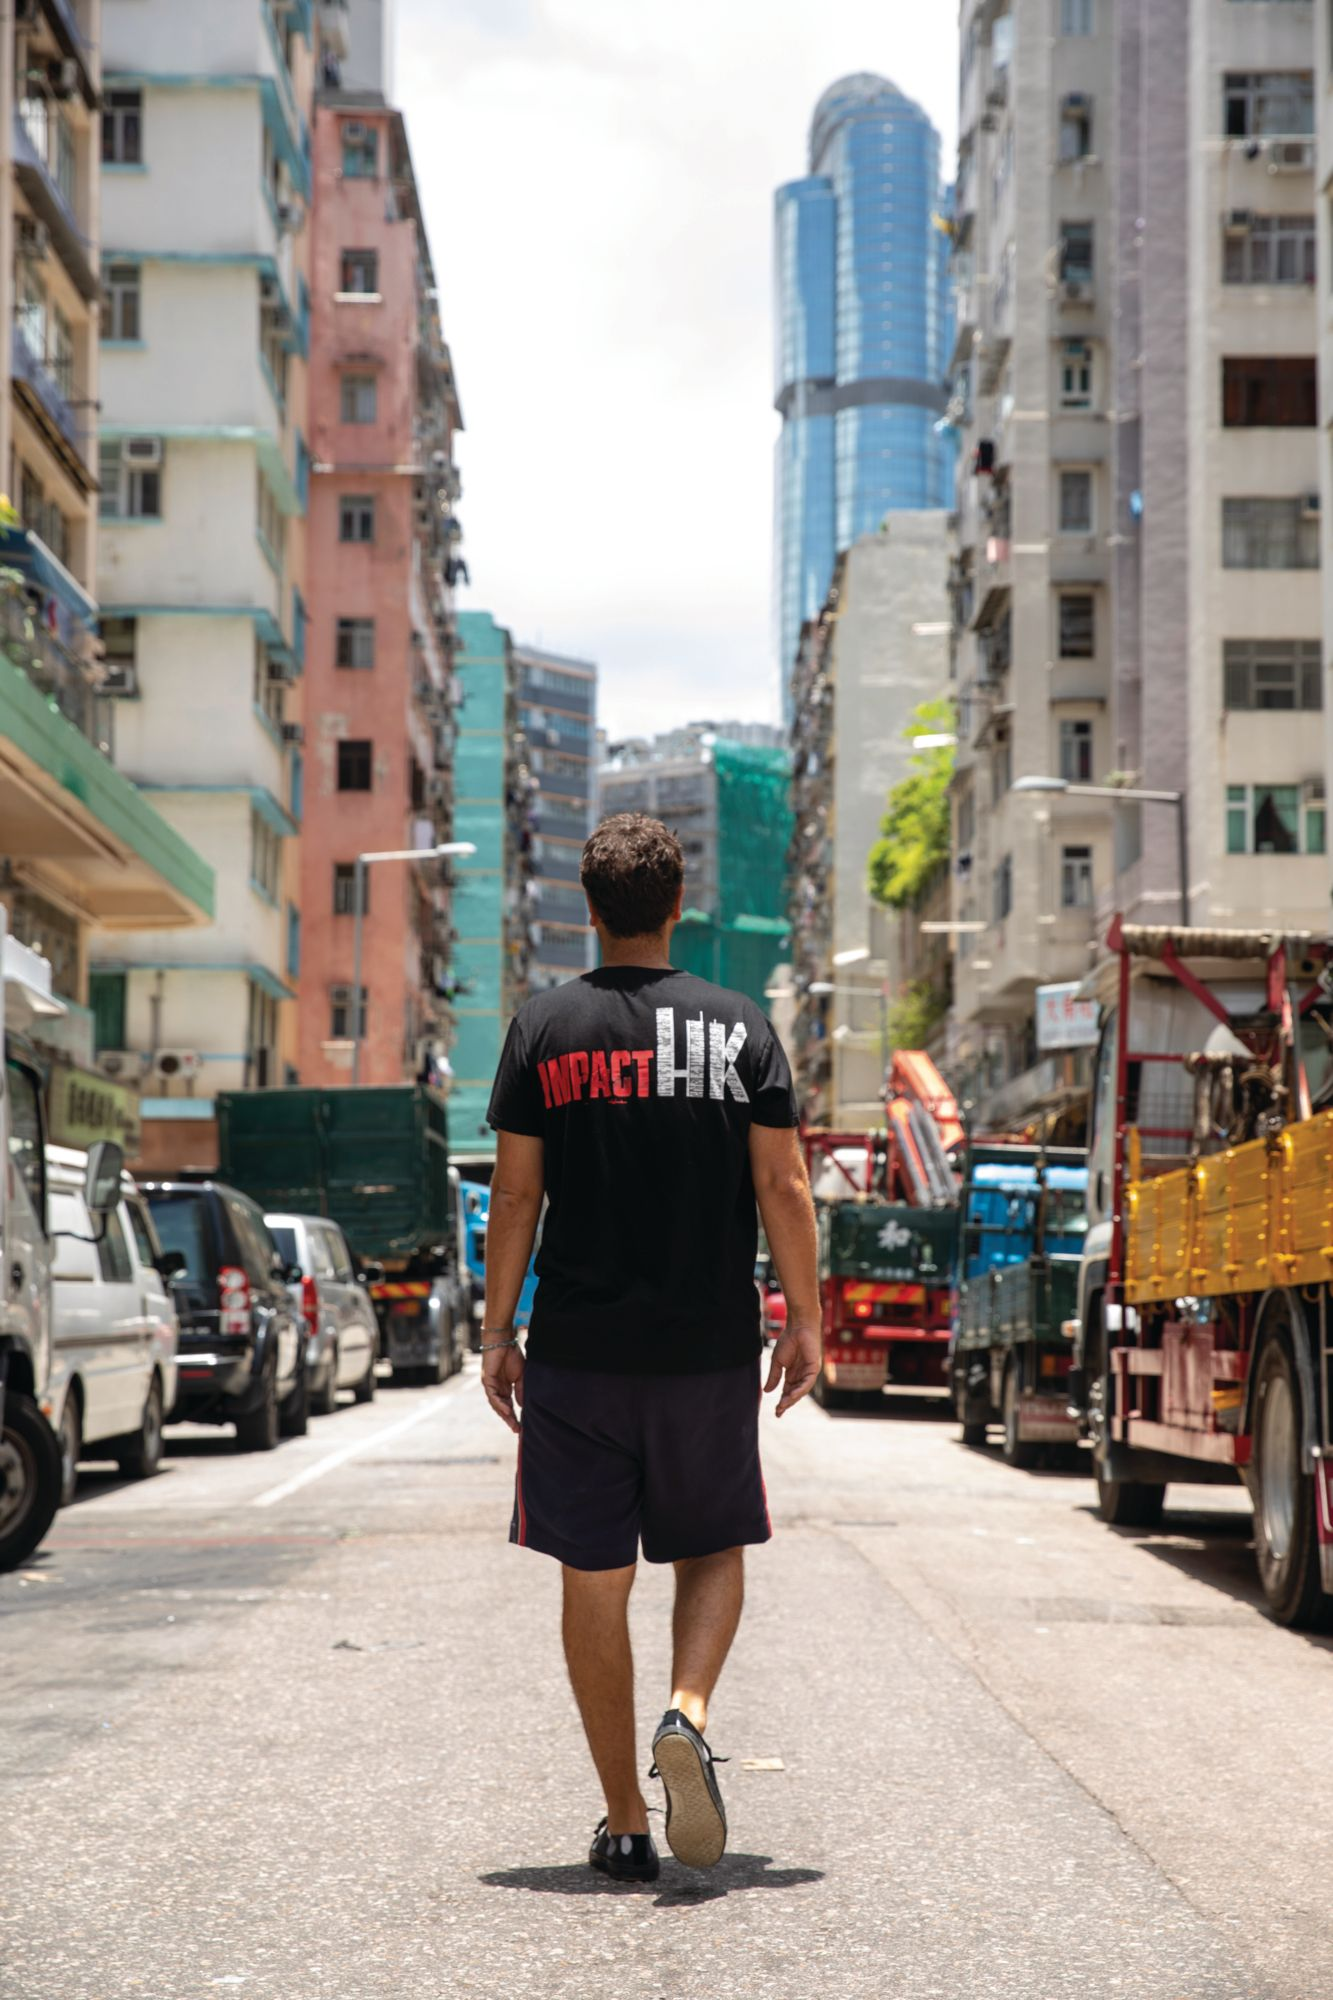 How Jeff Rotmeyer Is Creating Positive Change With His Charities Impact HK And Love 21